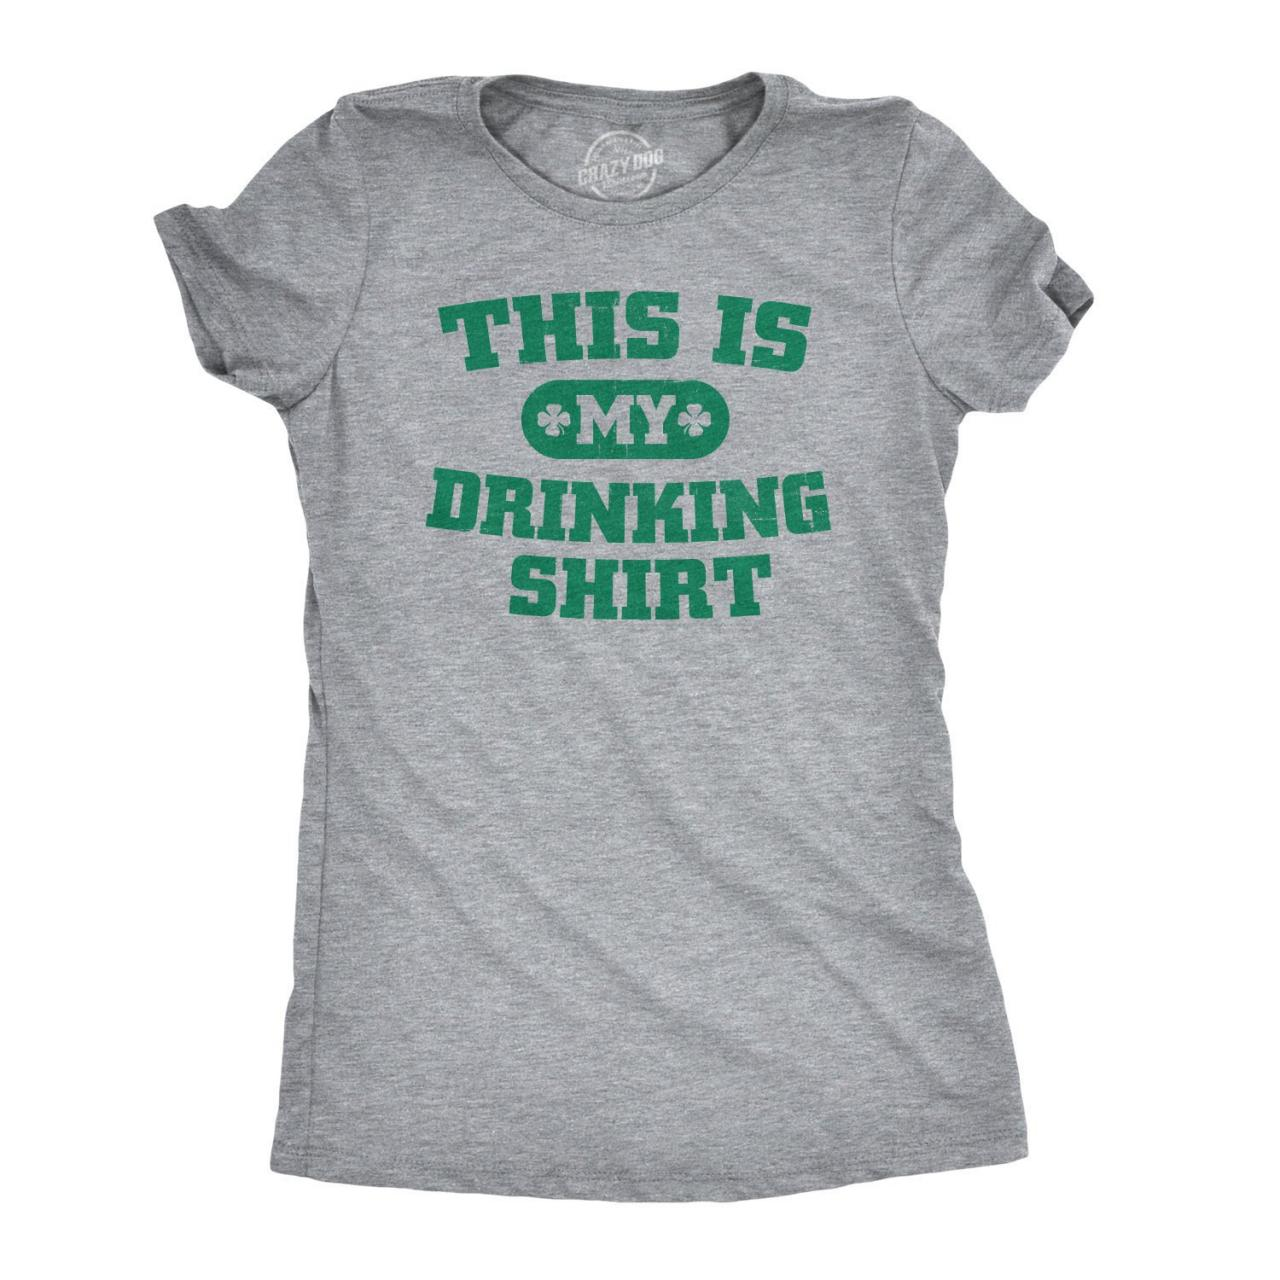 Womens This Is My Drinking Shirt, St Patricks Day T-Shirt Green, Irish Getting Drunk Tee, Party Night Out Shirt, S-2XL